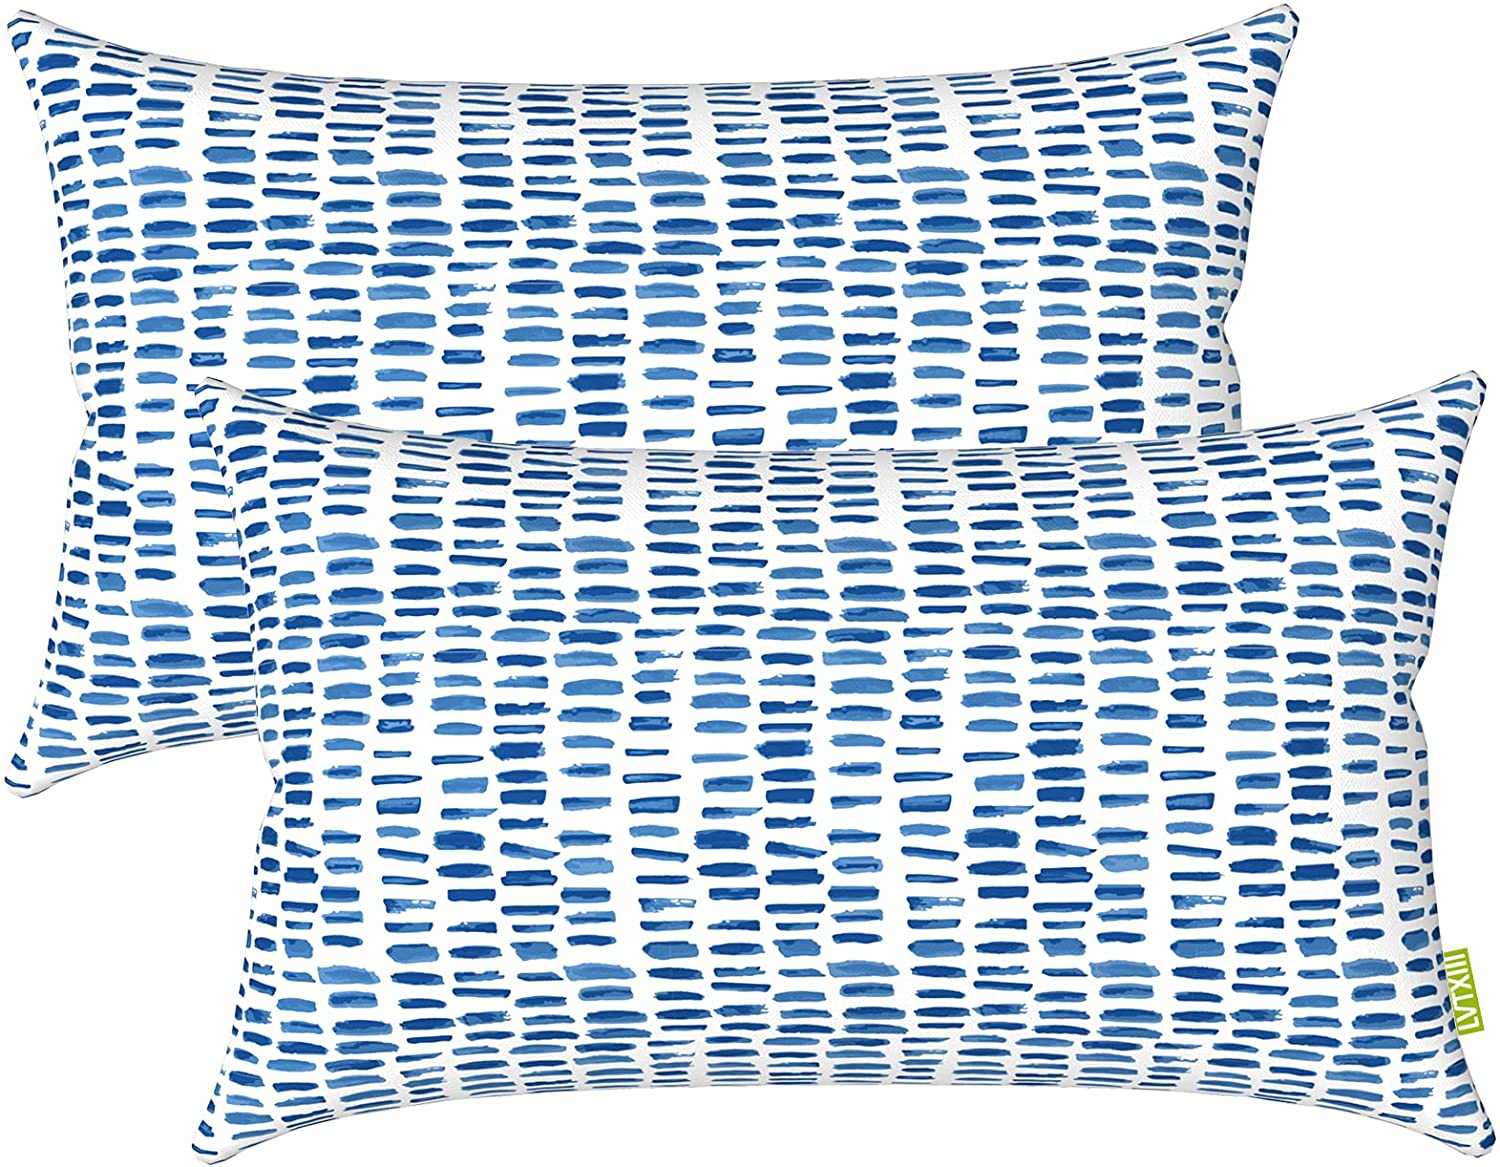 LVTXIII Outdoor/Indoor Lumbar Pillow Covers, Patio Garden Decorative Lumbar Pillow Covers, All Weather Cushion Cases for Sofa, Patio Couch Decoration (12x20inch, 2 Pack, Pebble Blue)